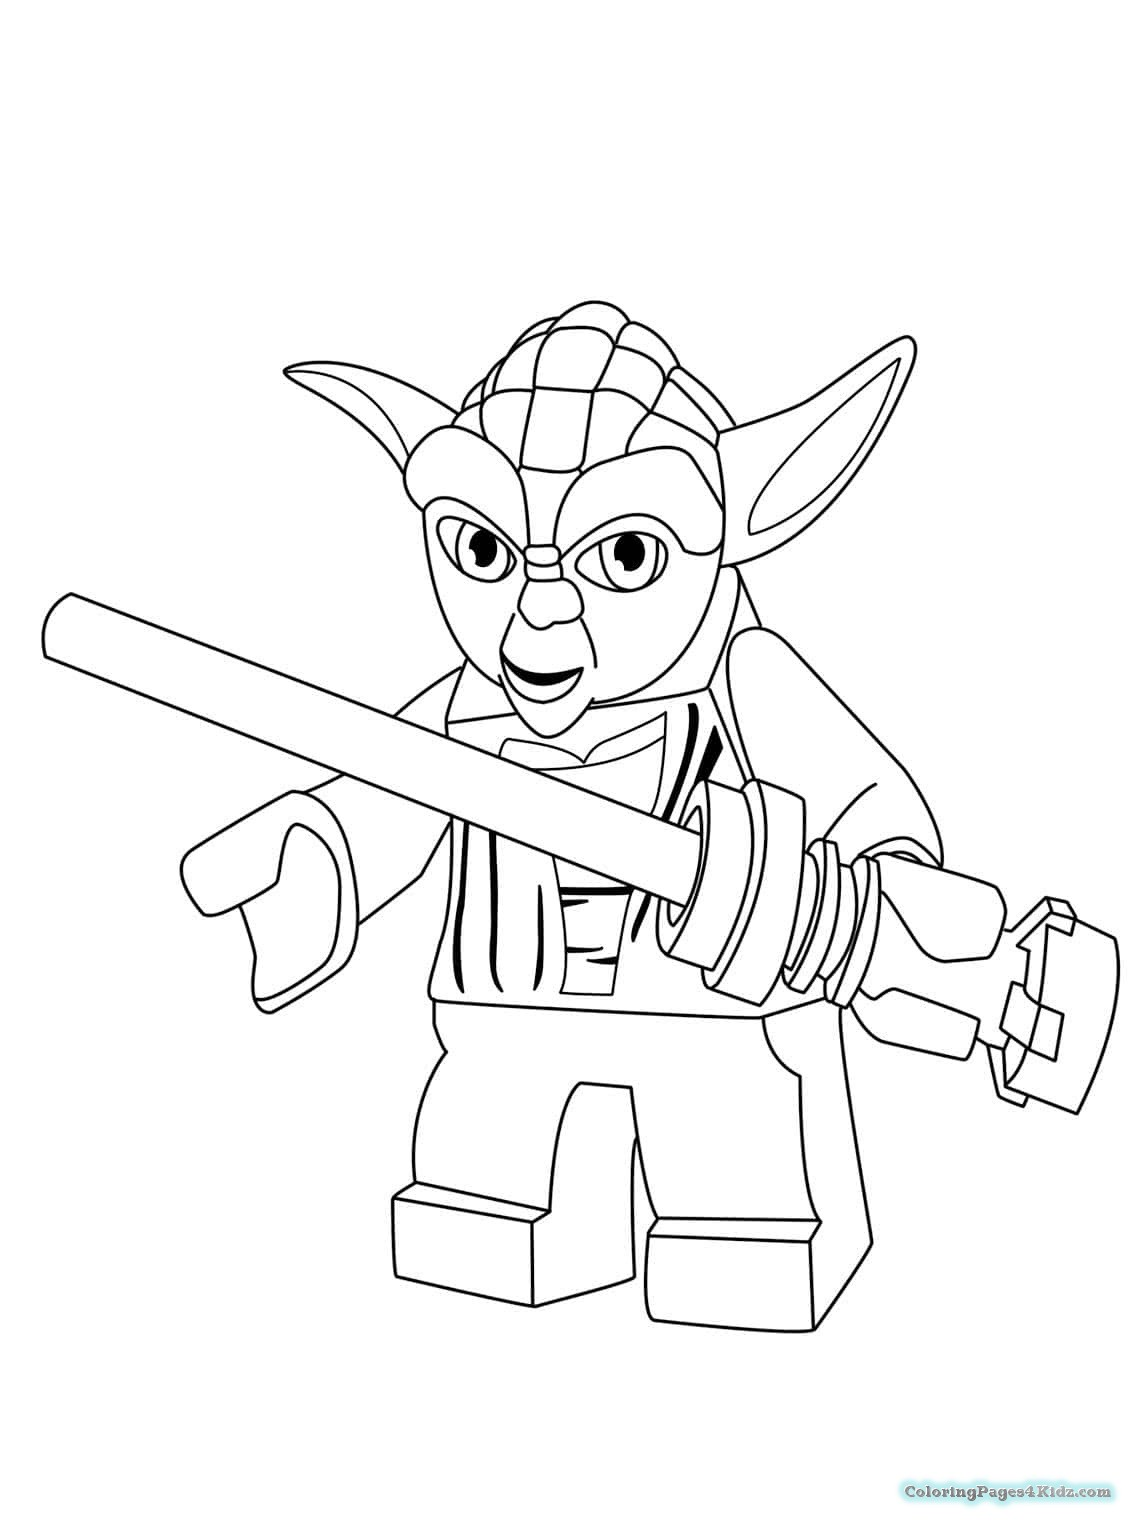 free lego star wars coloring pages star wars the force awakens lego coloring pages coloring star wars coloring pages free lego